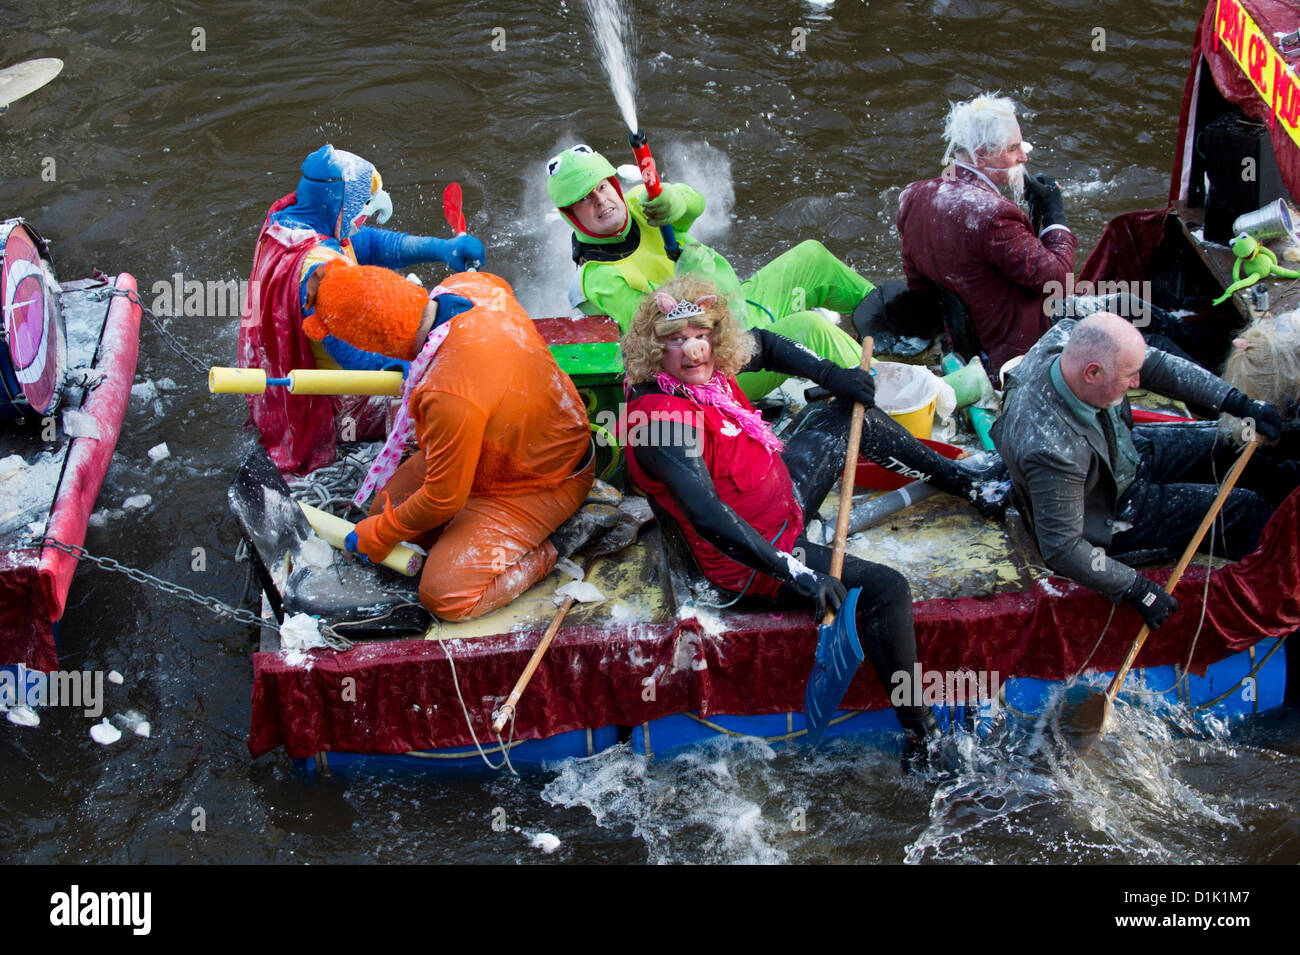 Matlock, UK. 26th Dec, 2012. A muppet show raft including Kermit and Miss Piggy is pelted with flour bombs by spectators - Stock Image